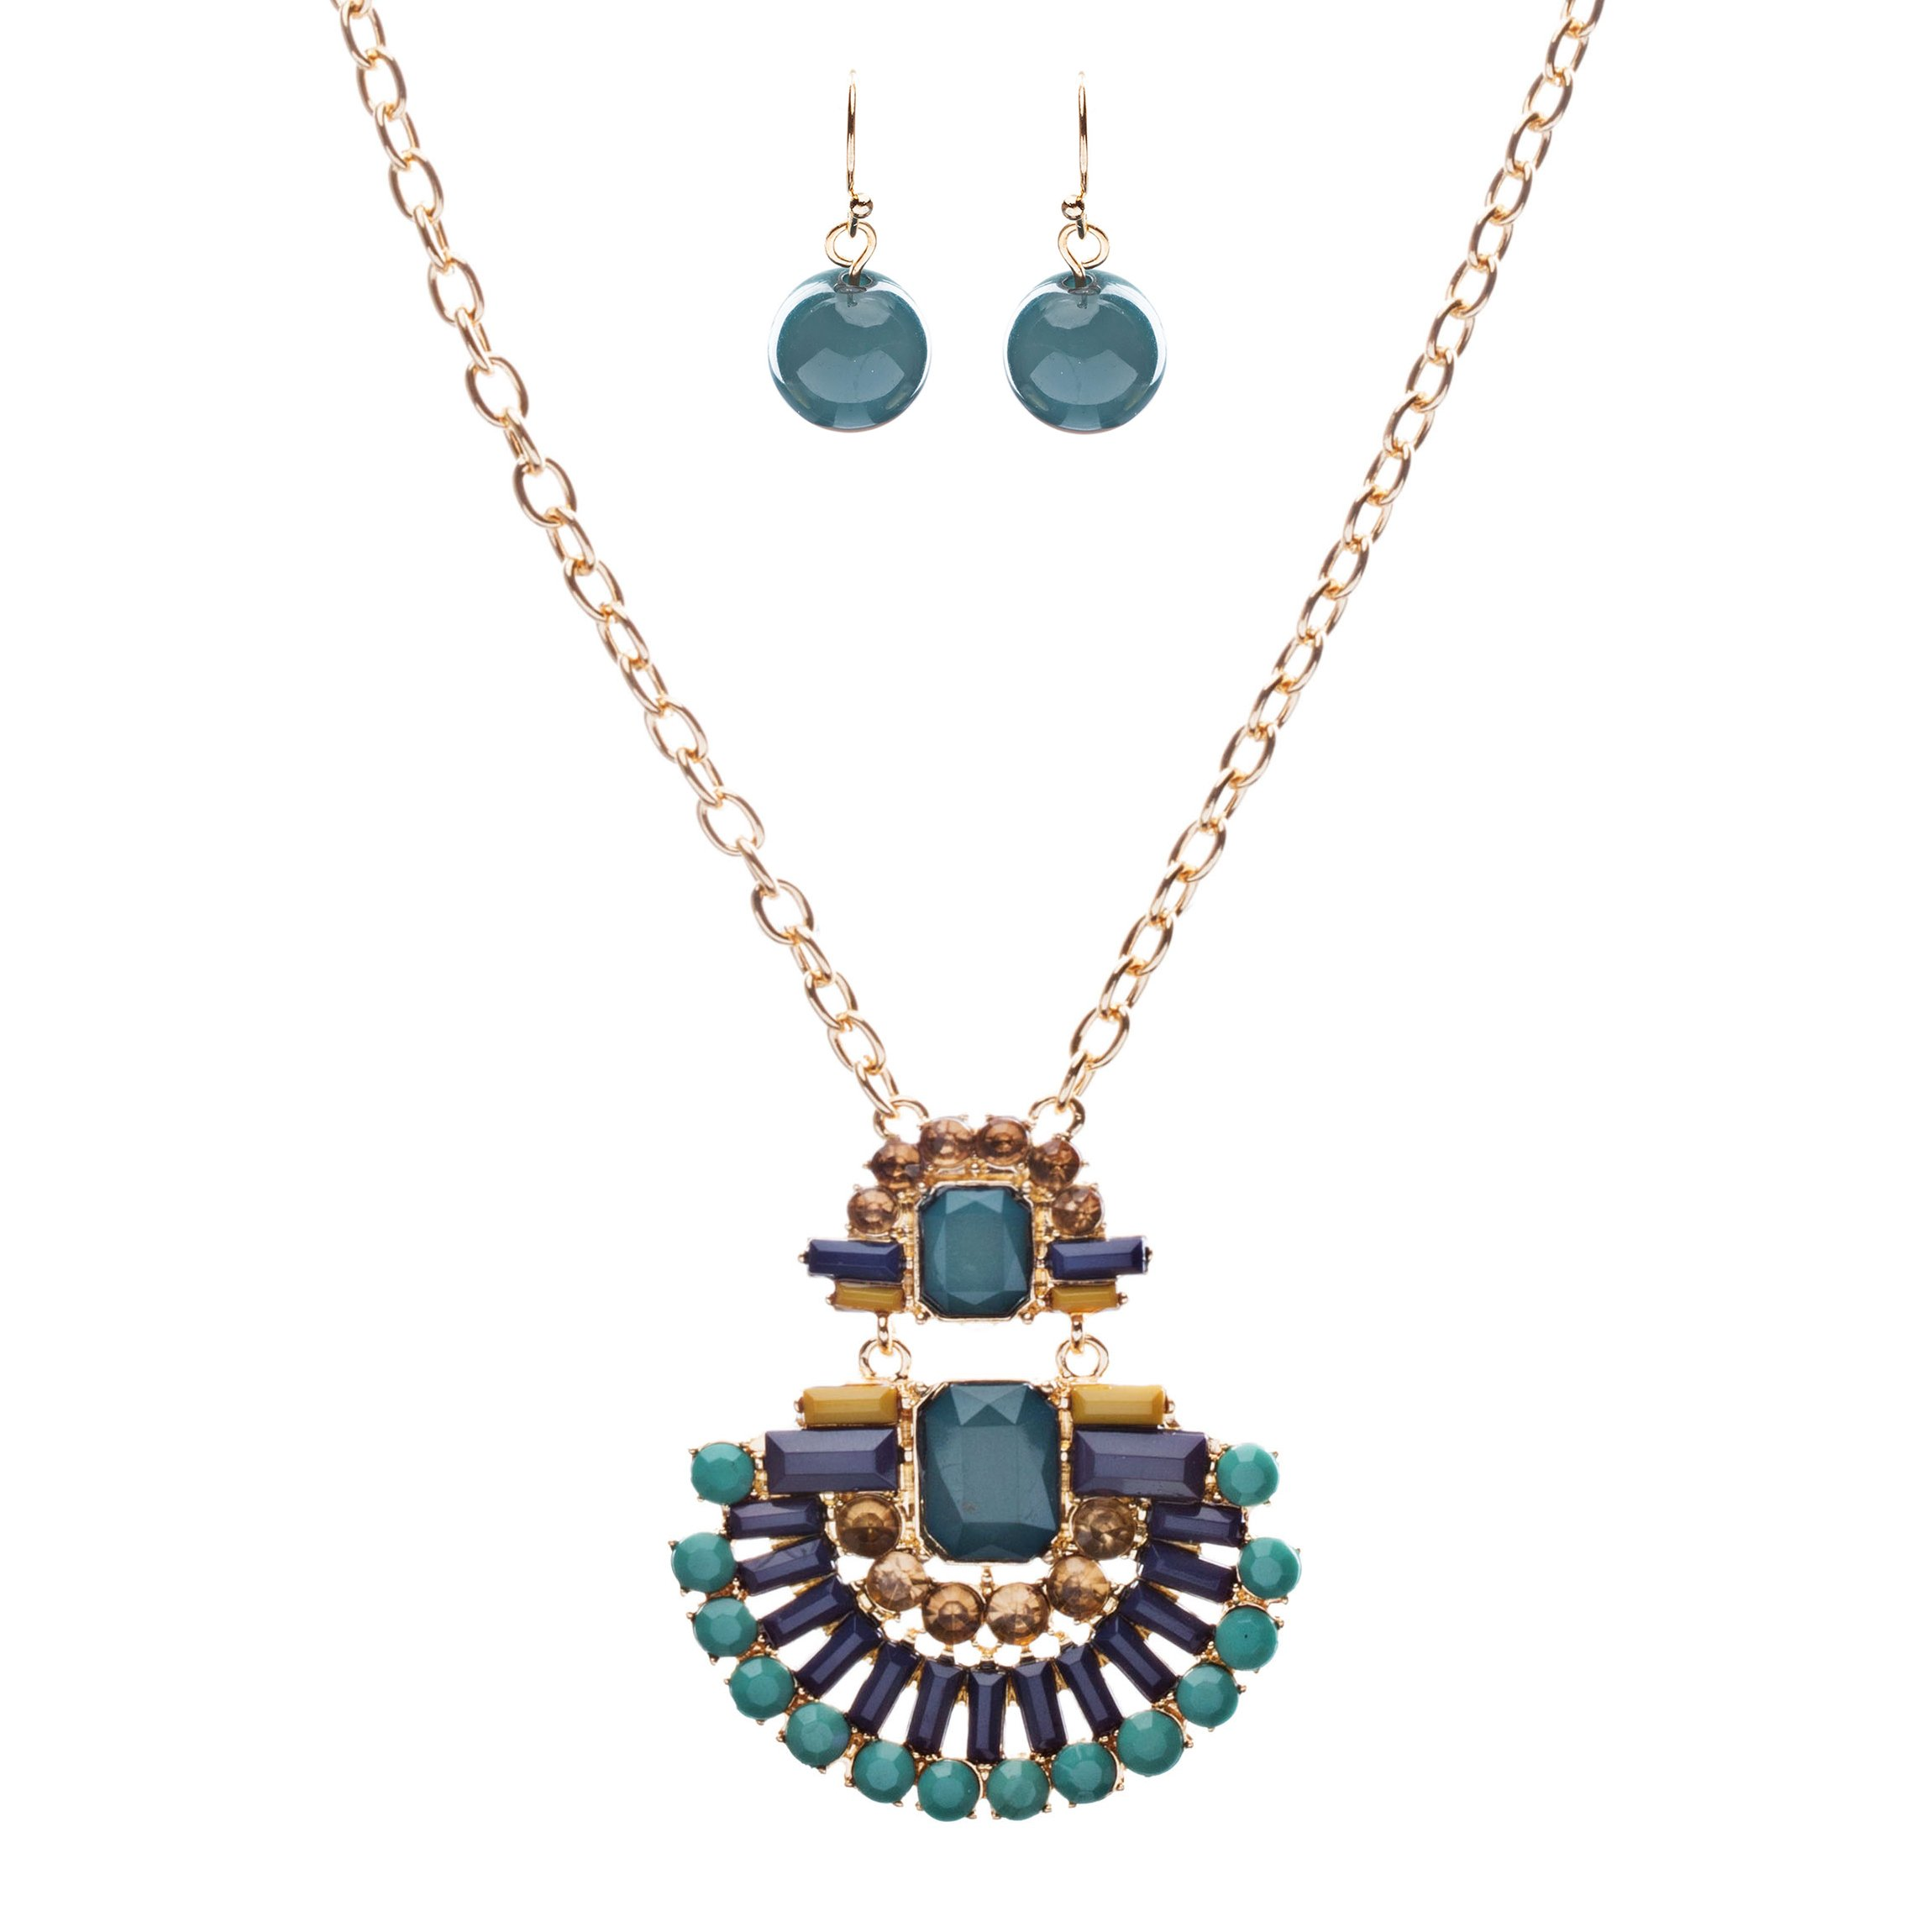 Unique Fashion Crystal Rhinestone Fan Charm Necklace And Earrings JN222 Green